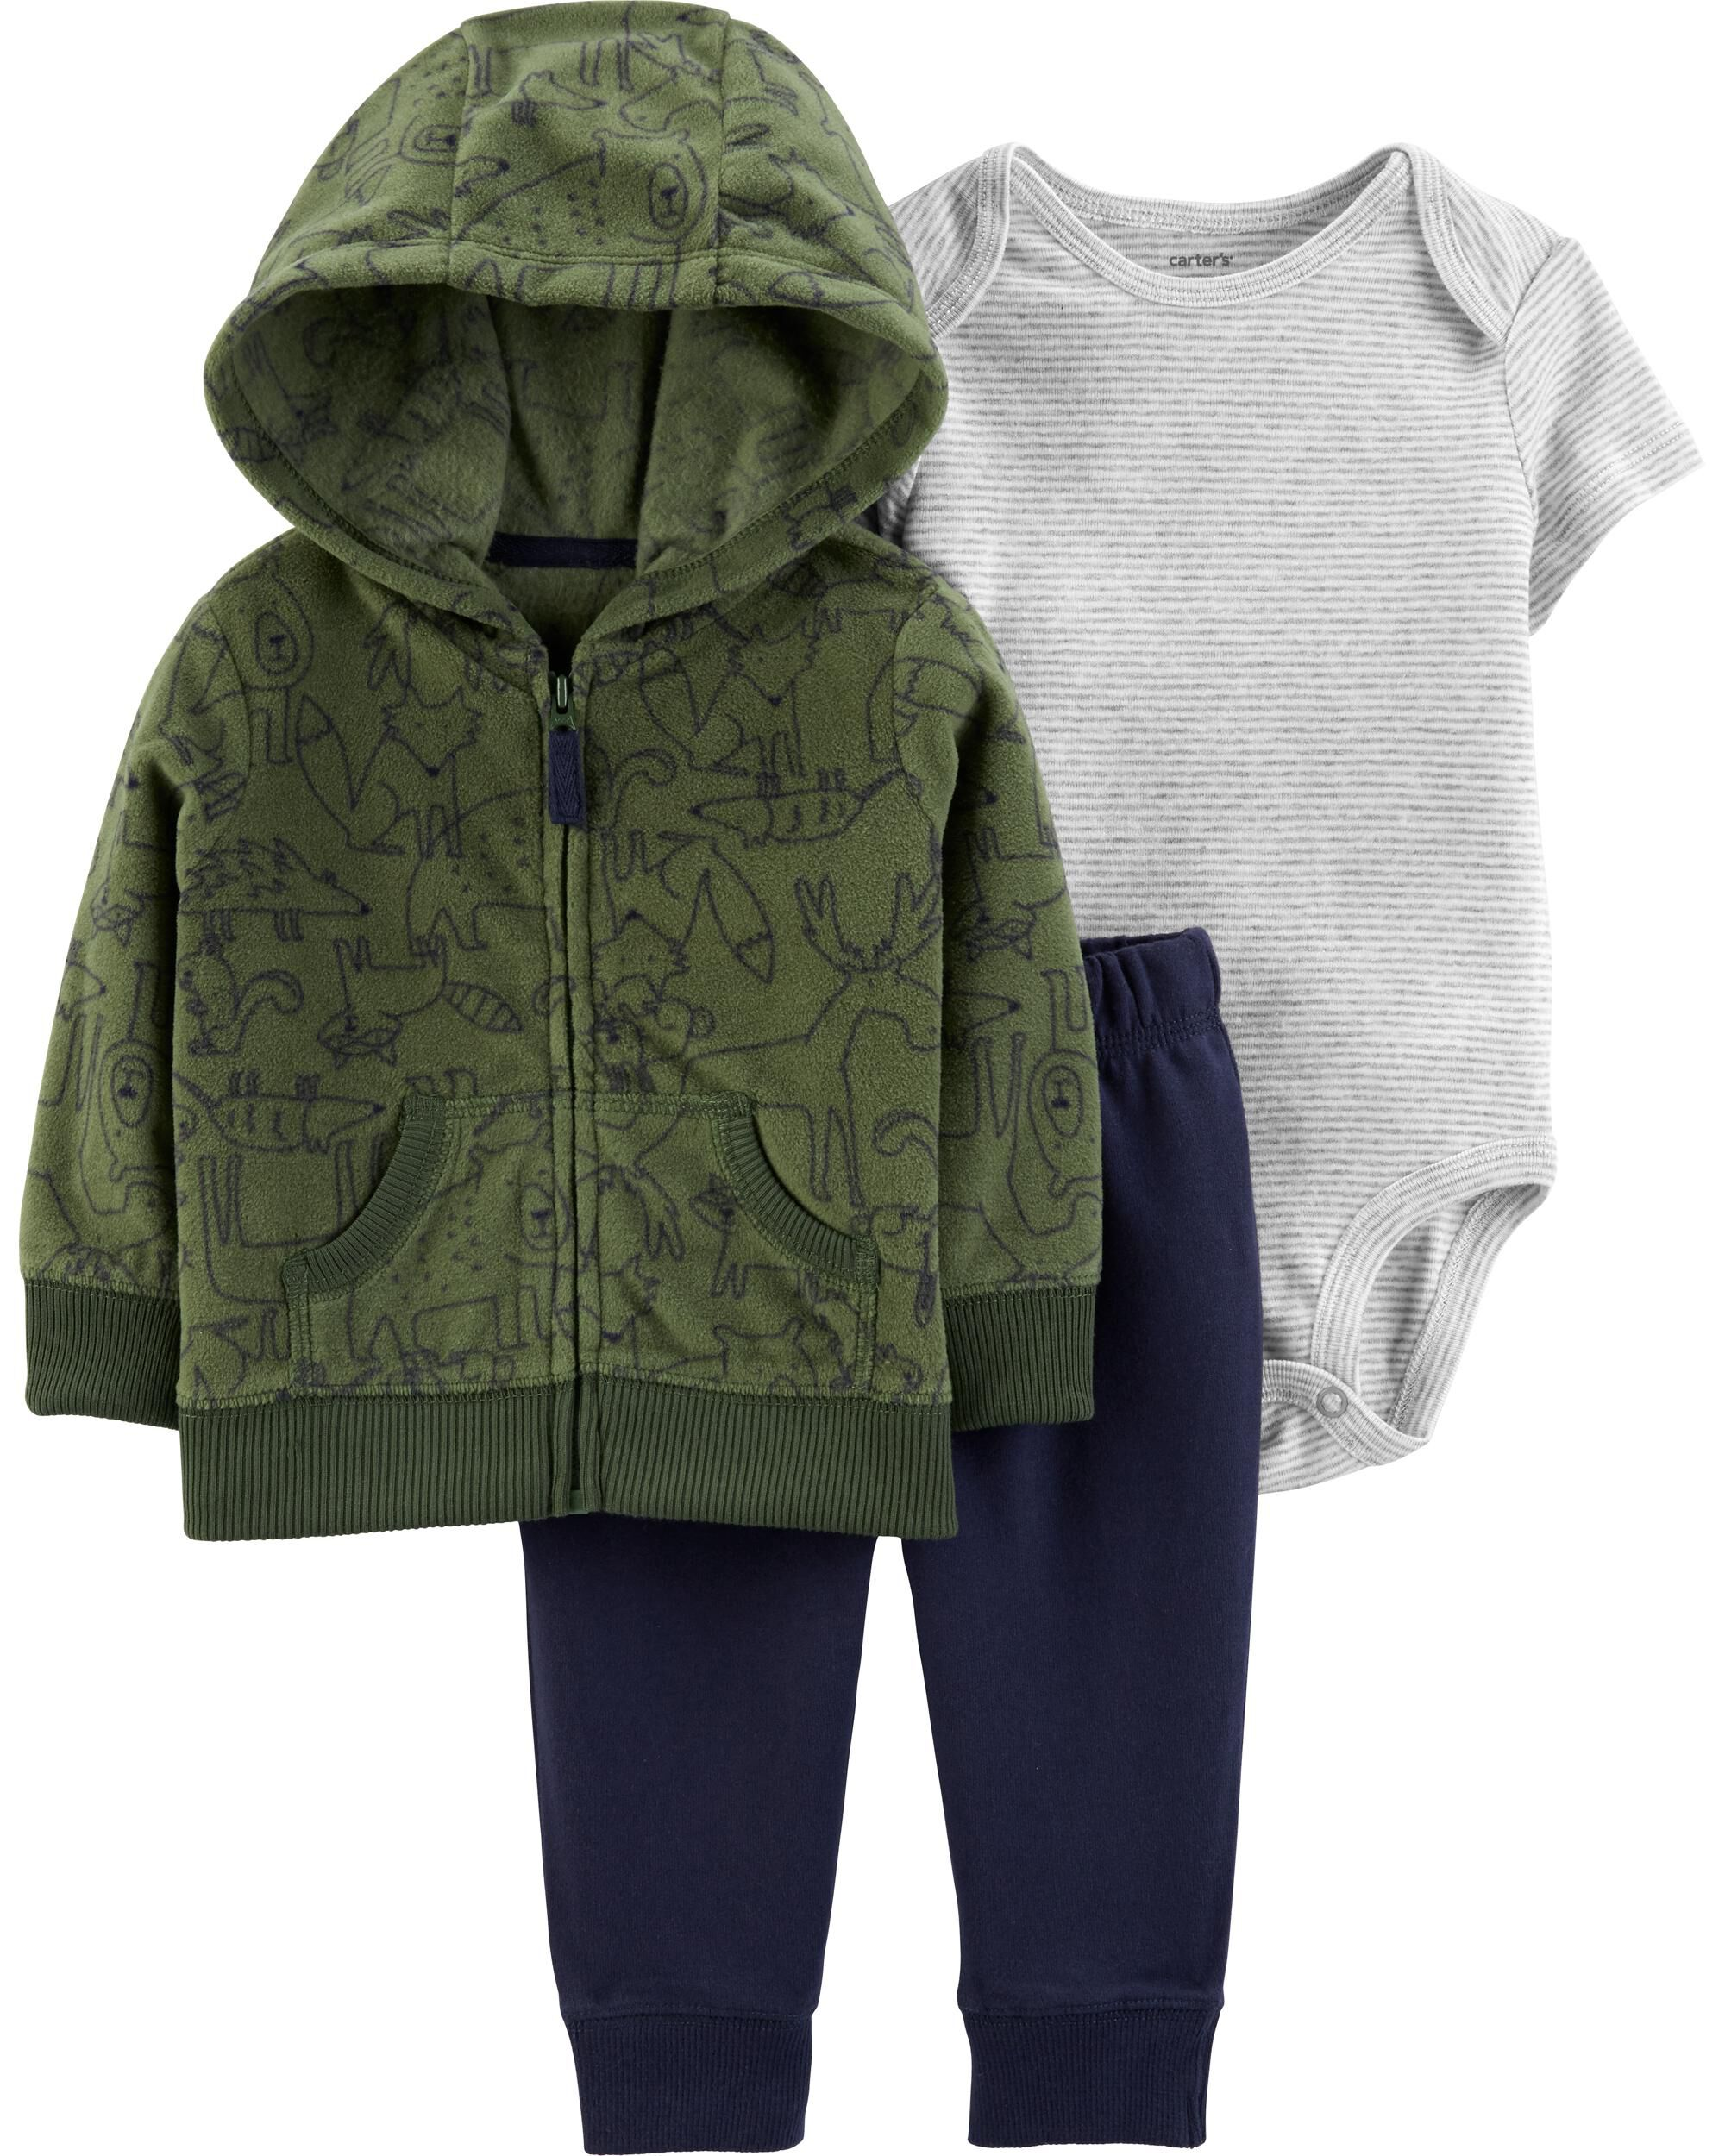 *CLEARANCE* 3-Piece Woodland Creatures Little Jacket Set